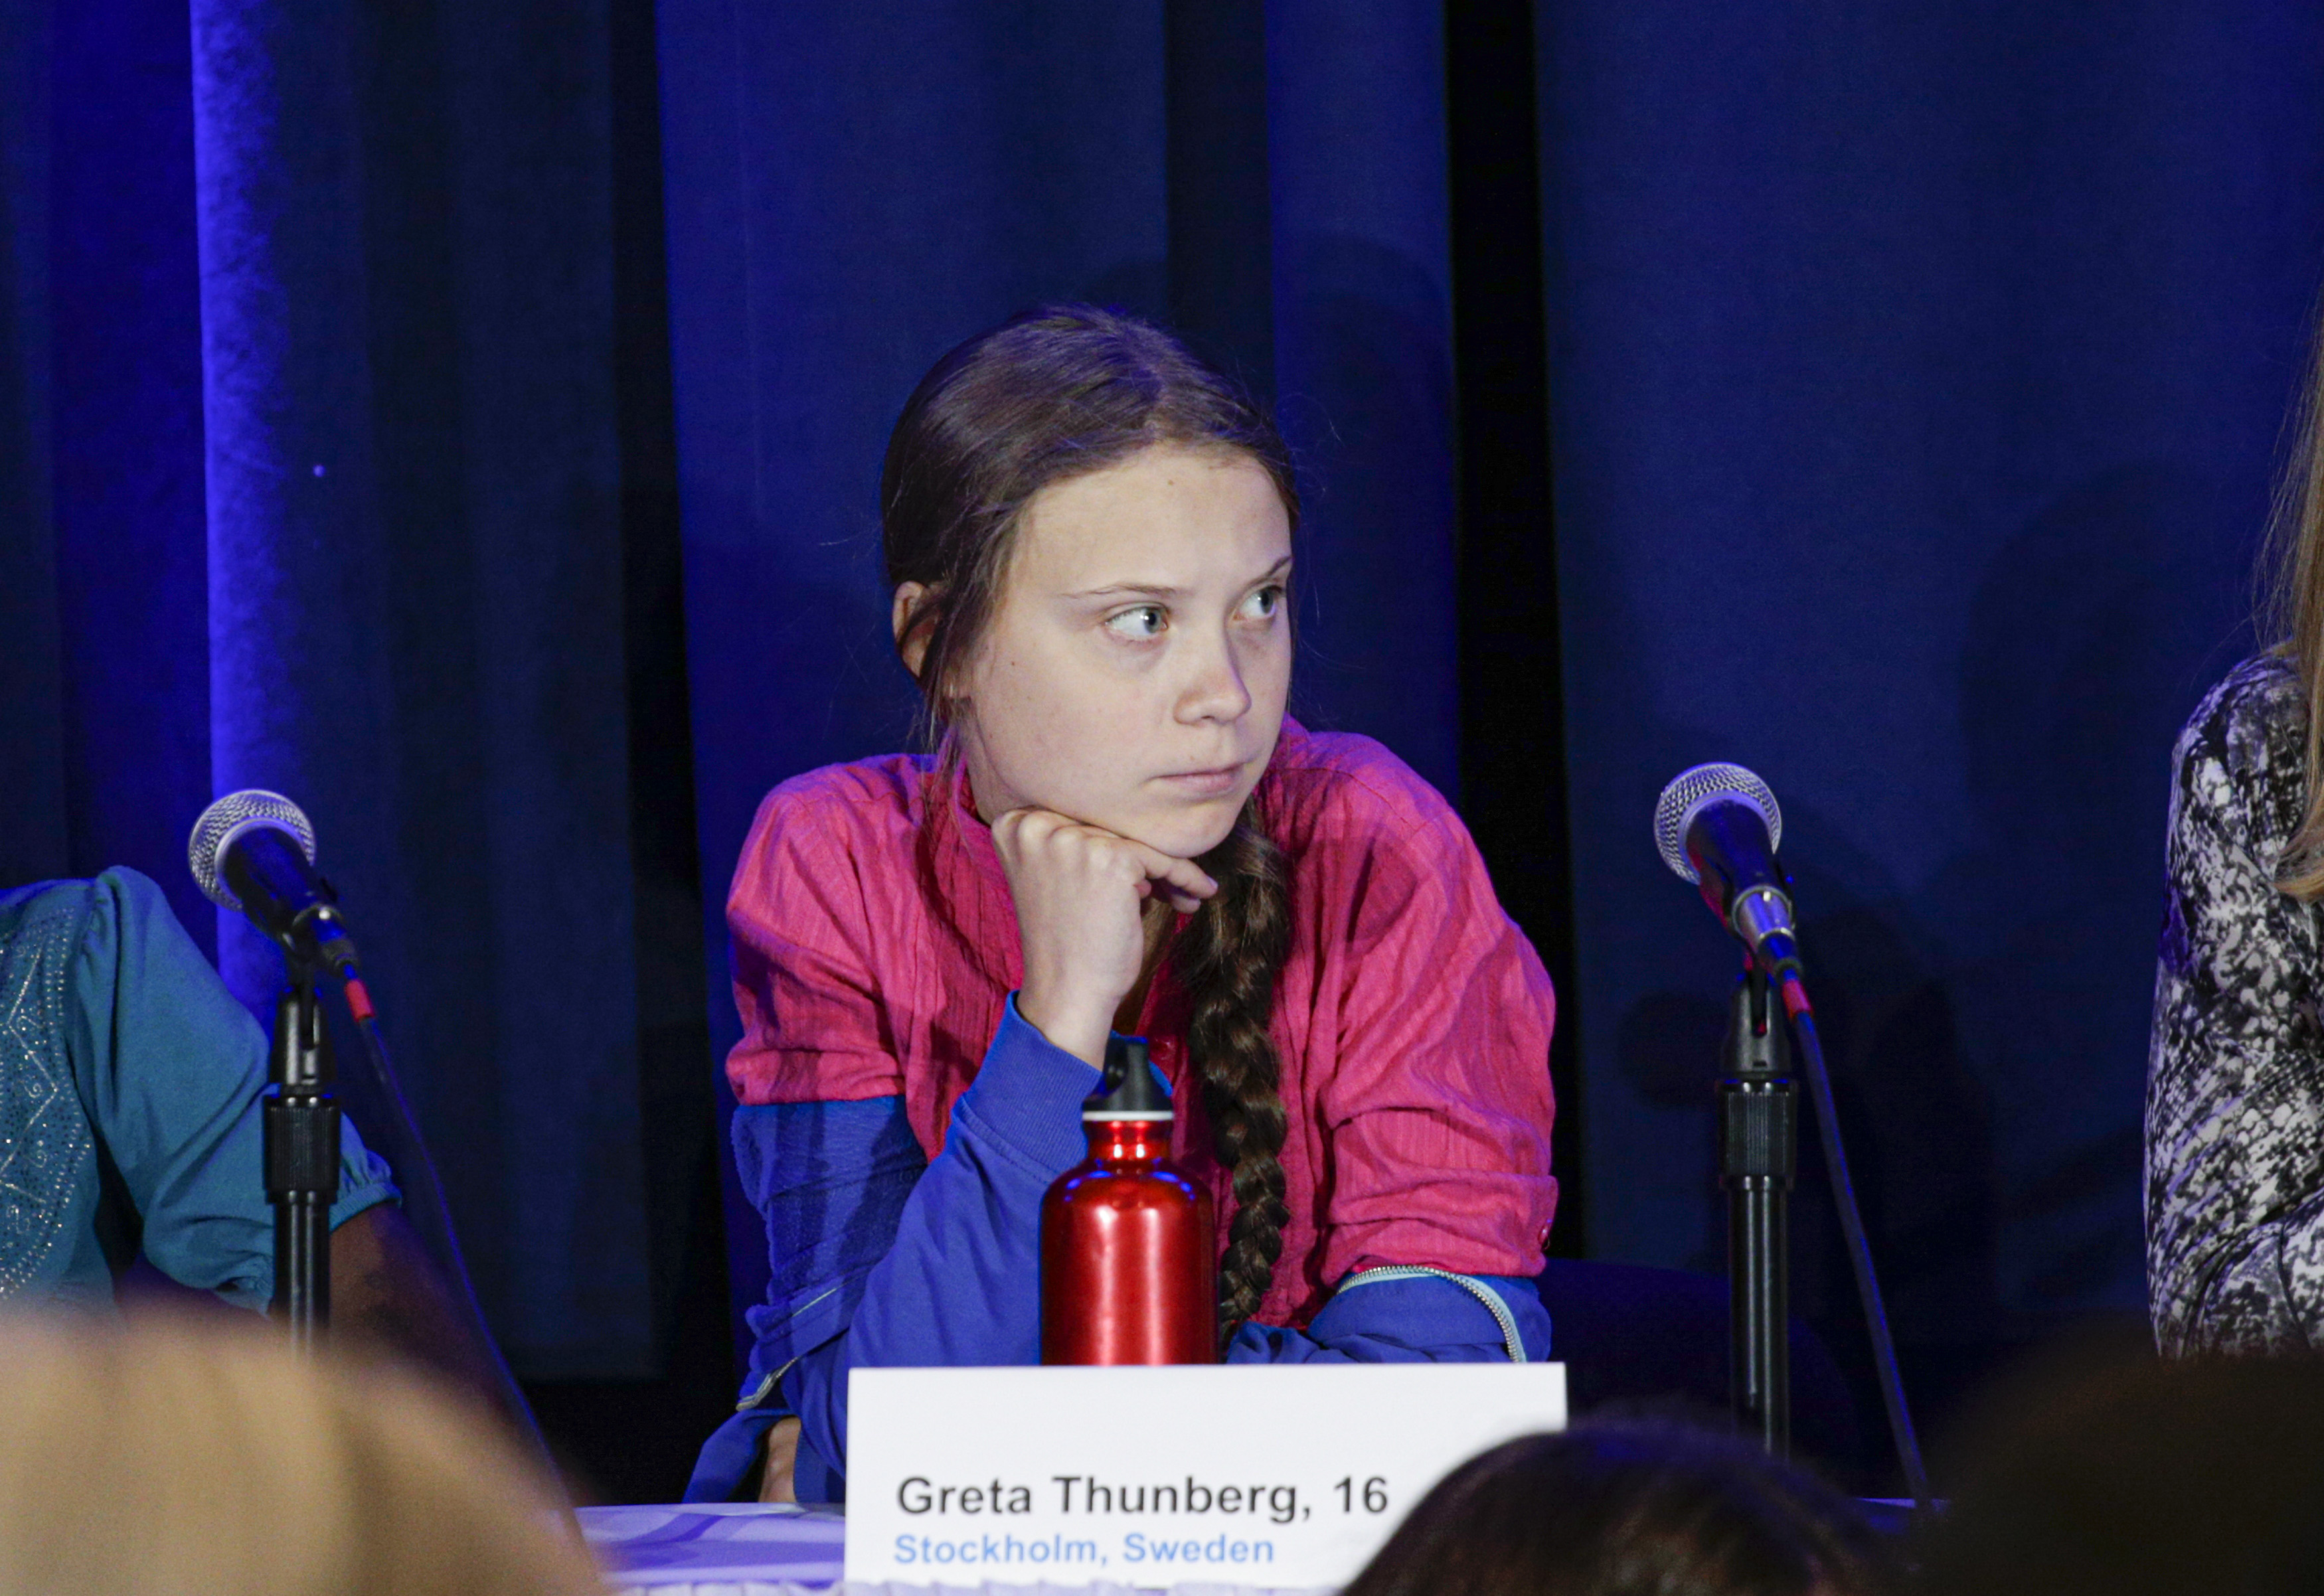 Why the right's usual smears don't work on Greta Thunberg